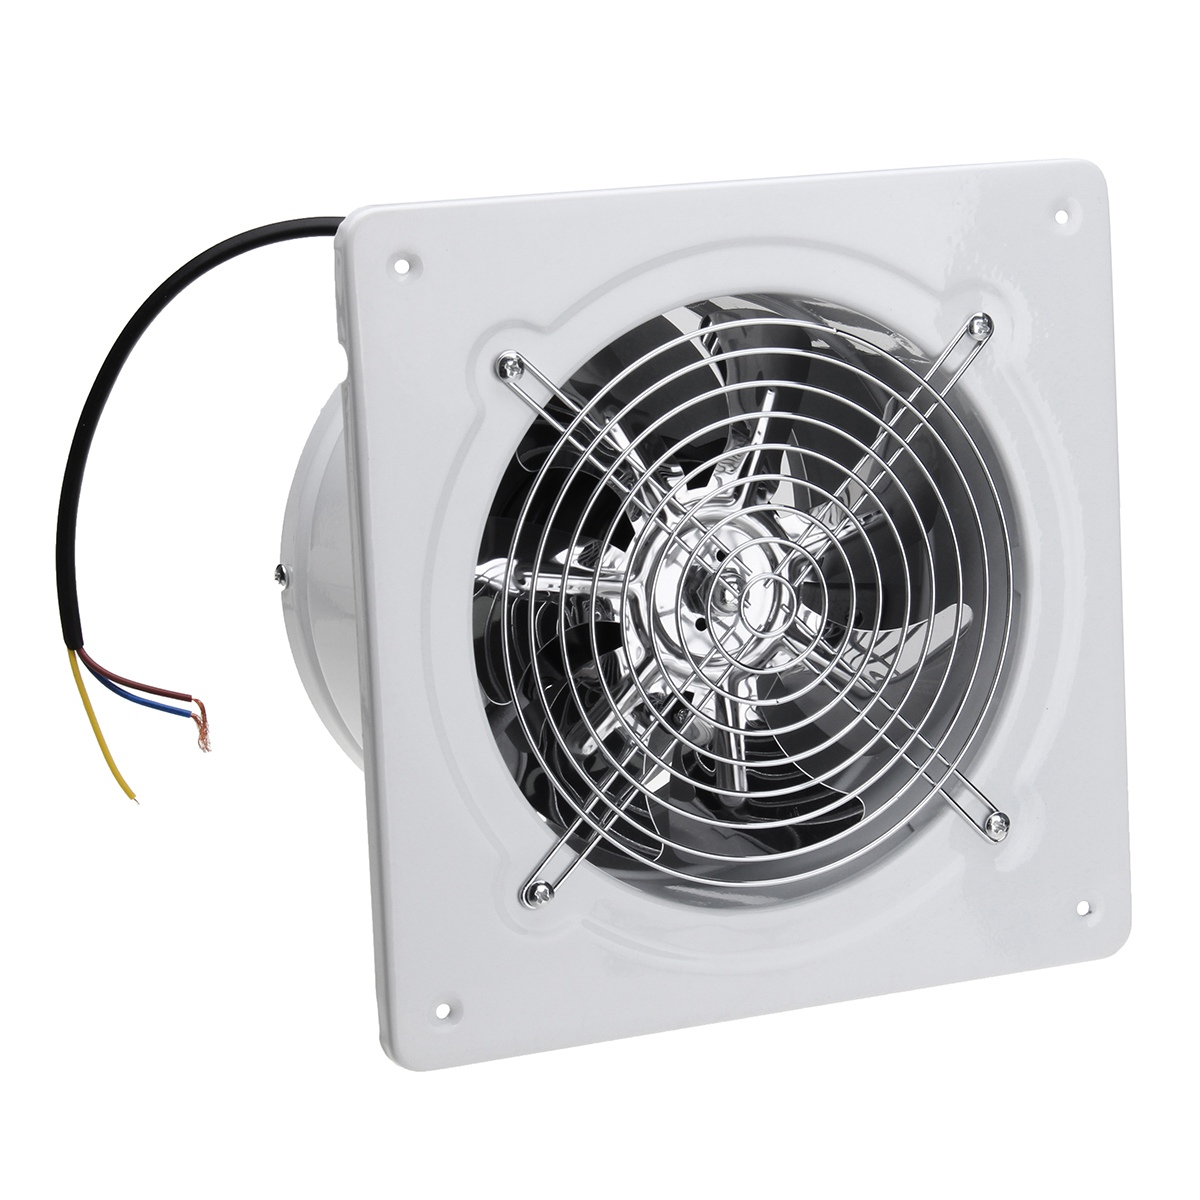 4 Inch 20W 220V High Speed Exhaust Fan Toilet Kitchen Bathroom Hanging Wall Window Glass Small Ventilator Extractor Exhaust Fa